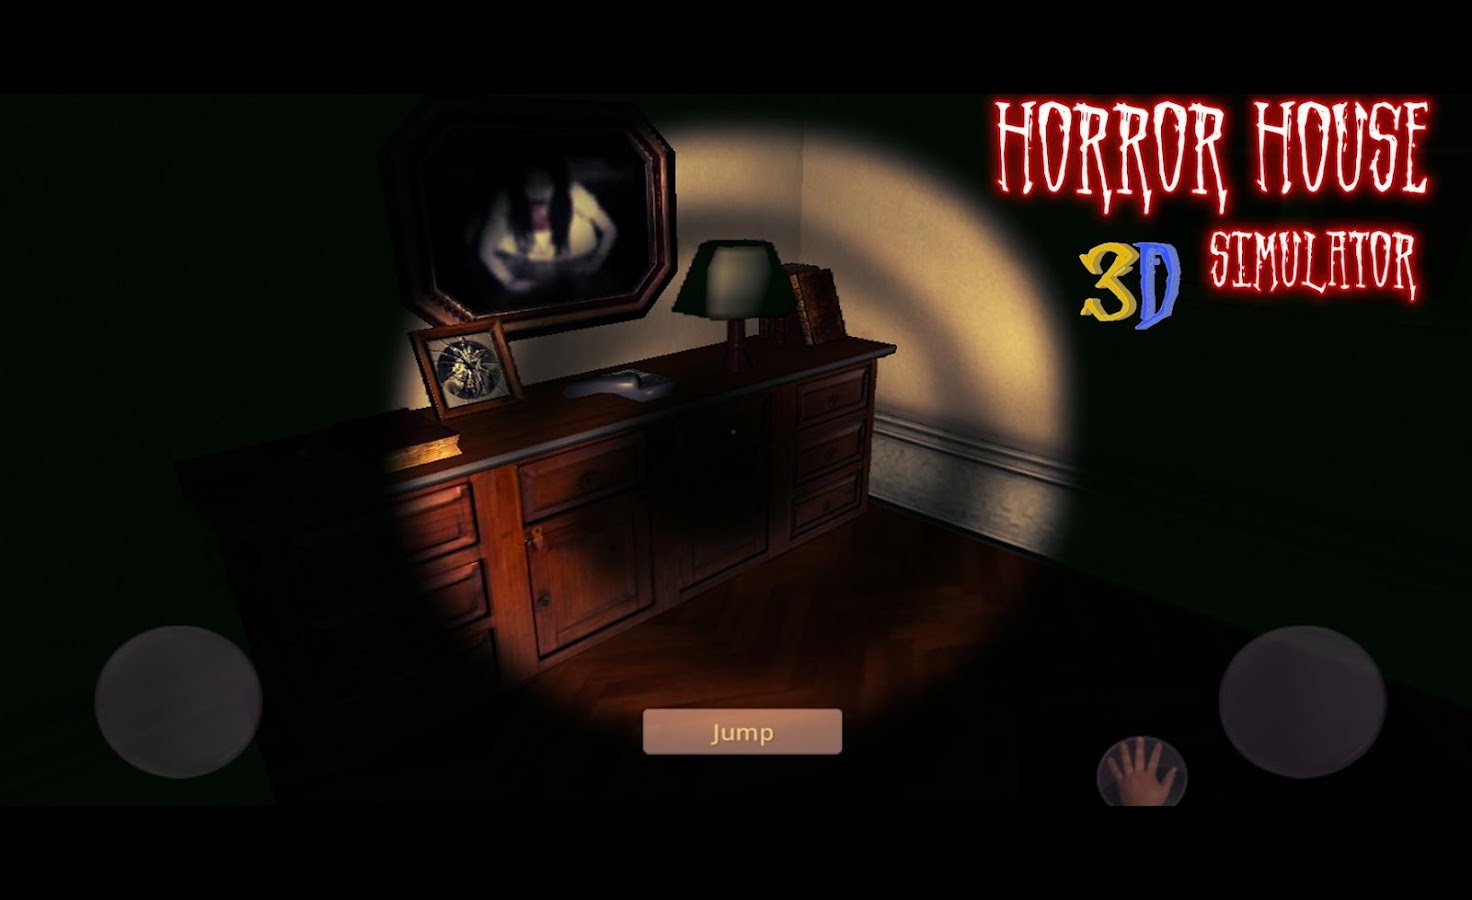 Curse breakers halloween horror mansion walkthrough solution -  Horror House Simulator 3d 1 9 Screenshot 14